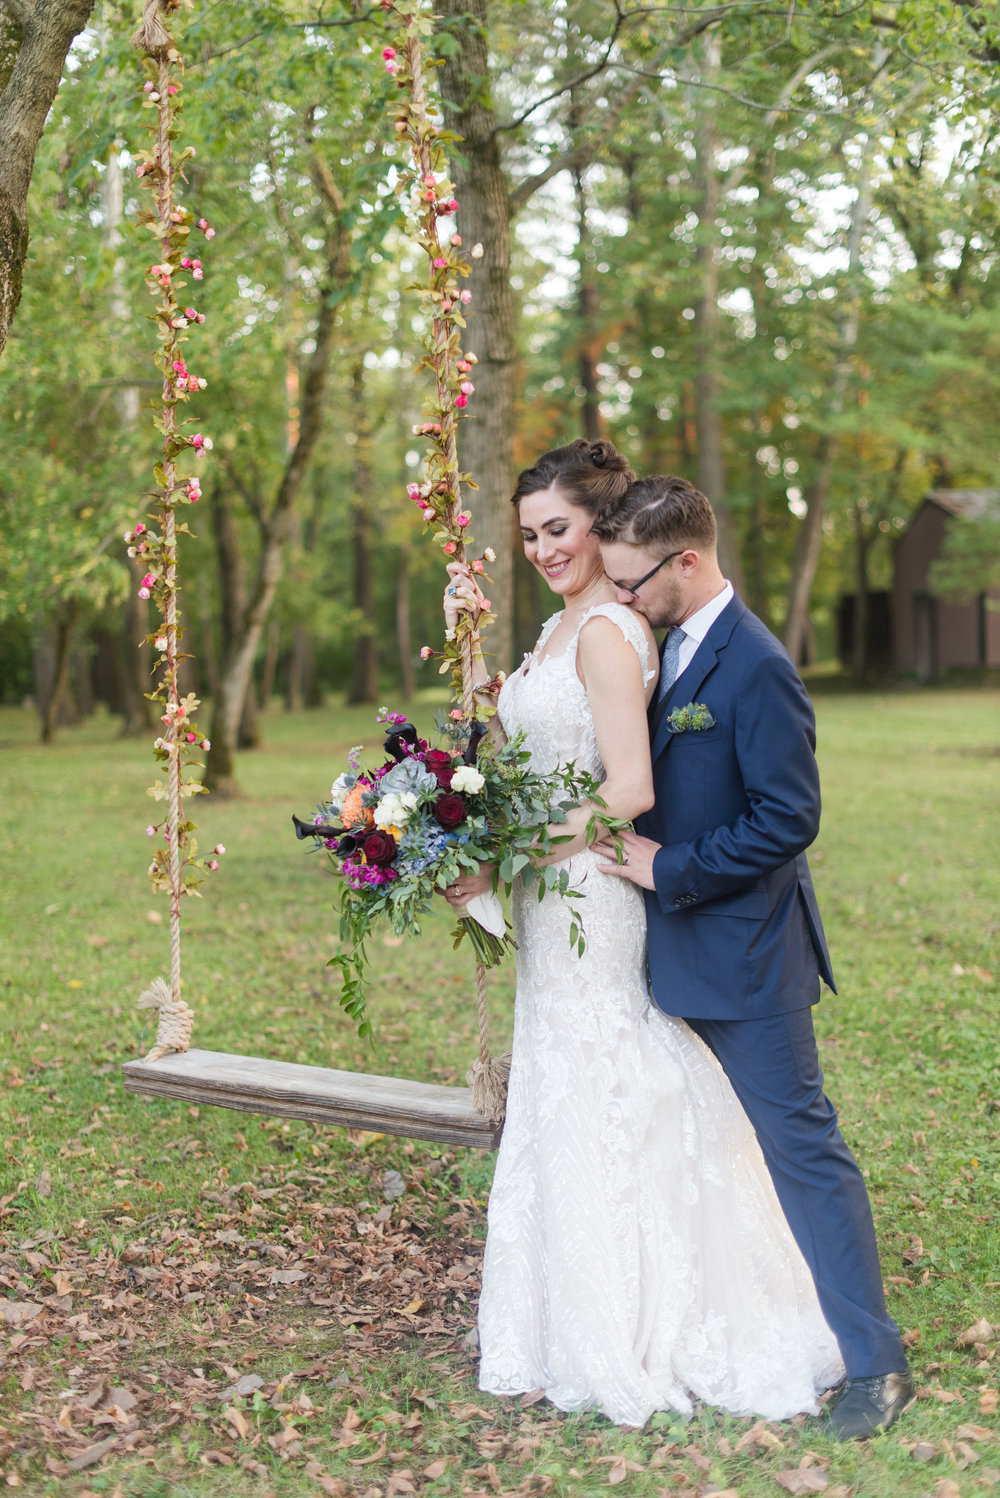 BlackIrisEstateWedding-Elizabeth+Mike-1359.jpg